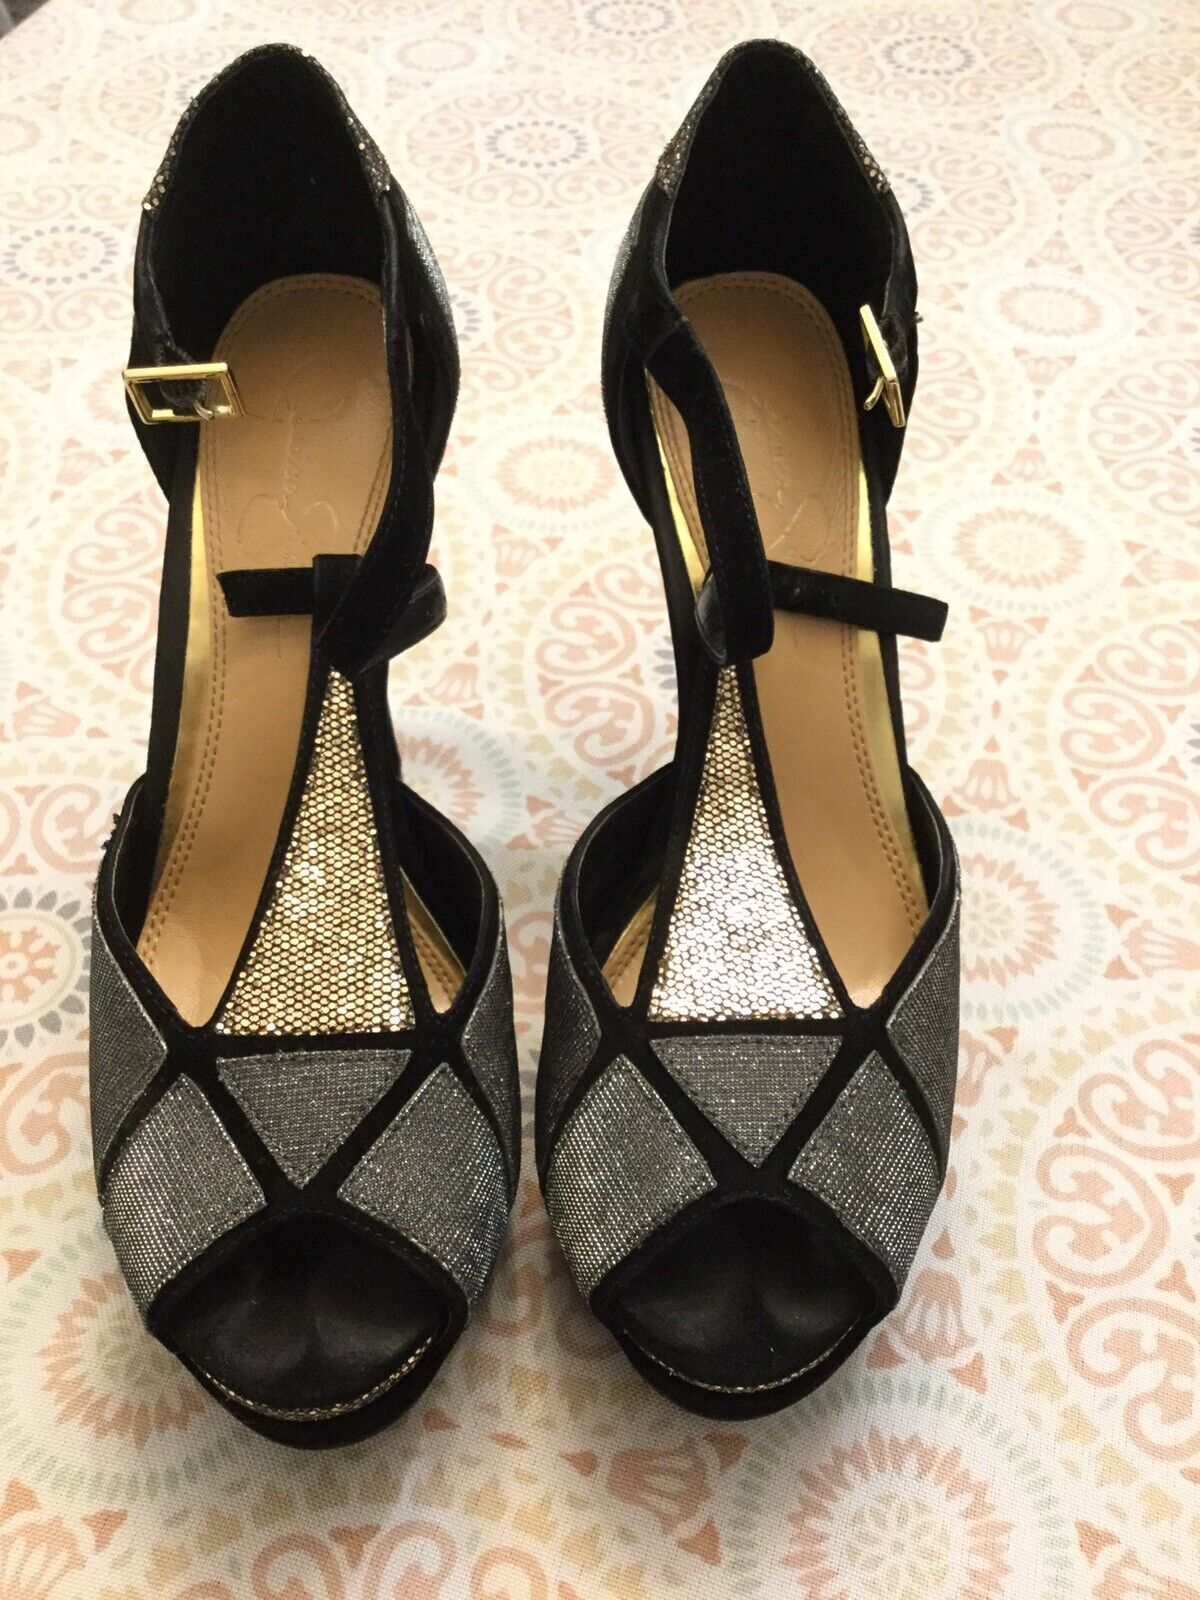 Jessica Simpson Wedge Heels Black Velvet gold Silver Sz. 8